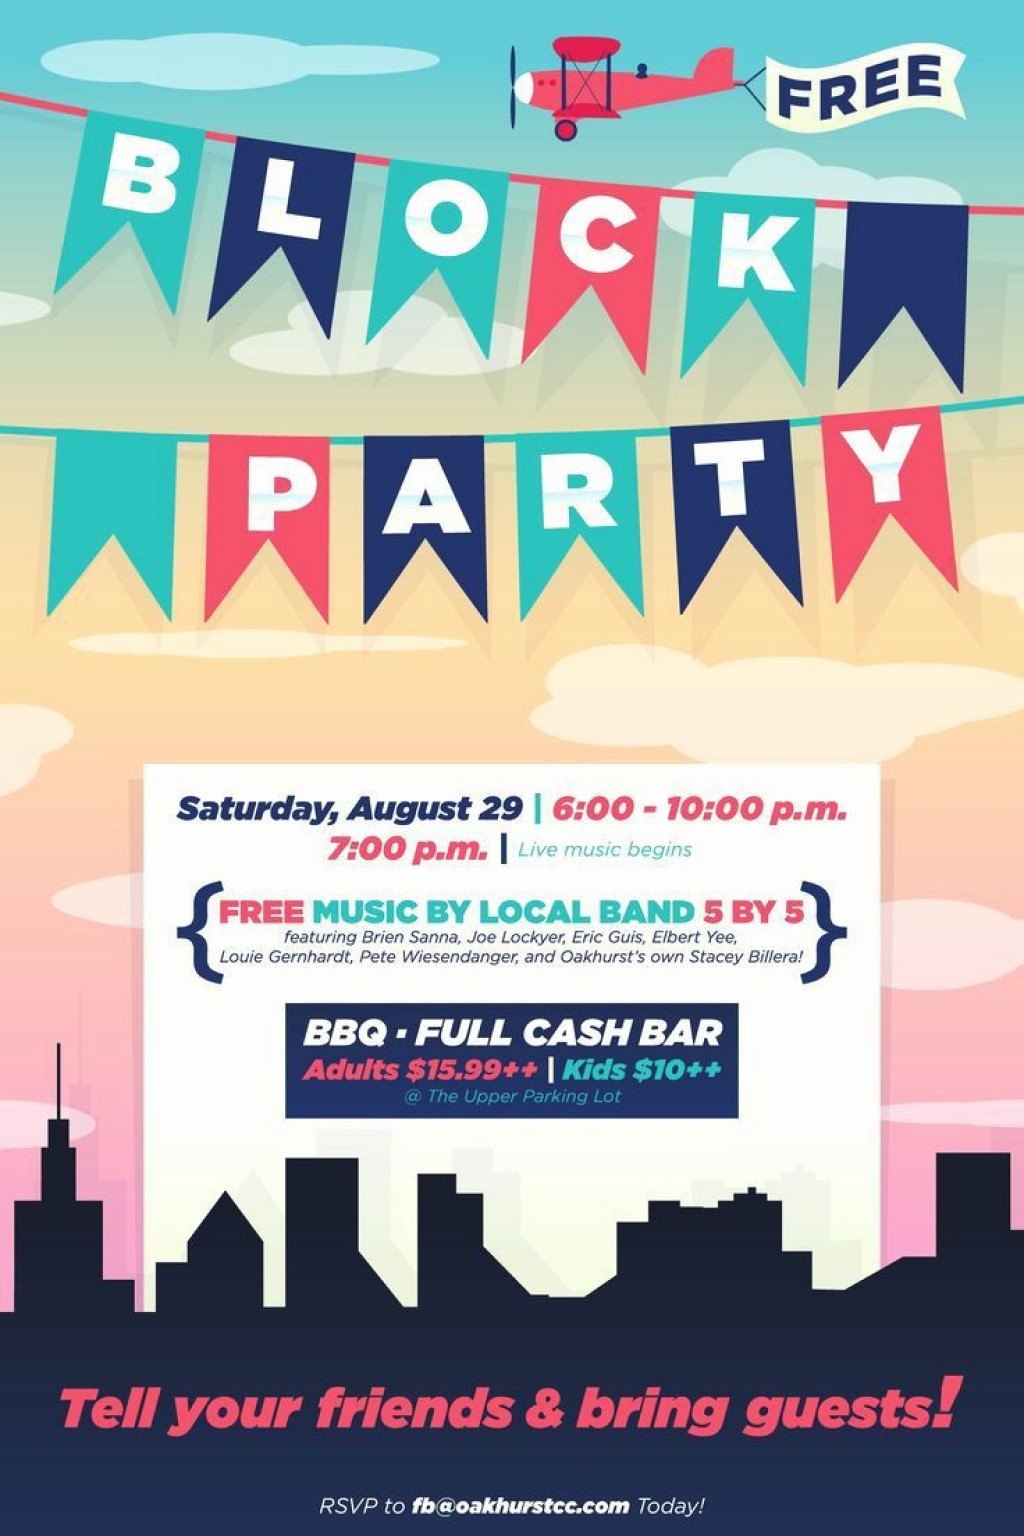 003 Unforgettable Block Party Flyer Template Concept  Templates FreeLarge